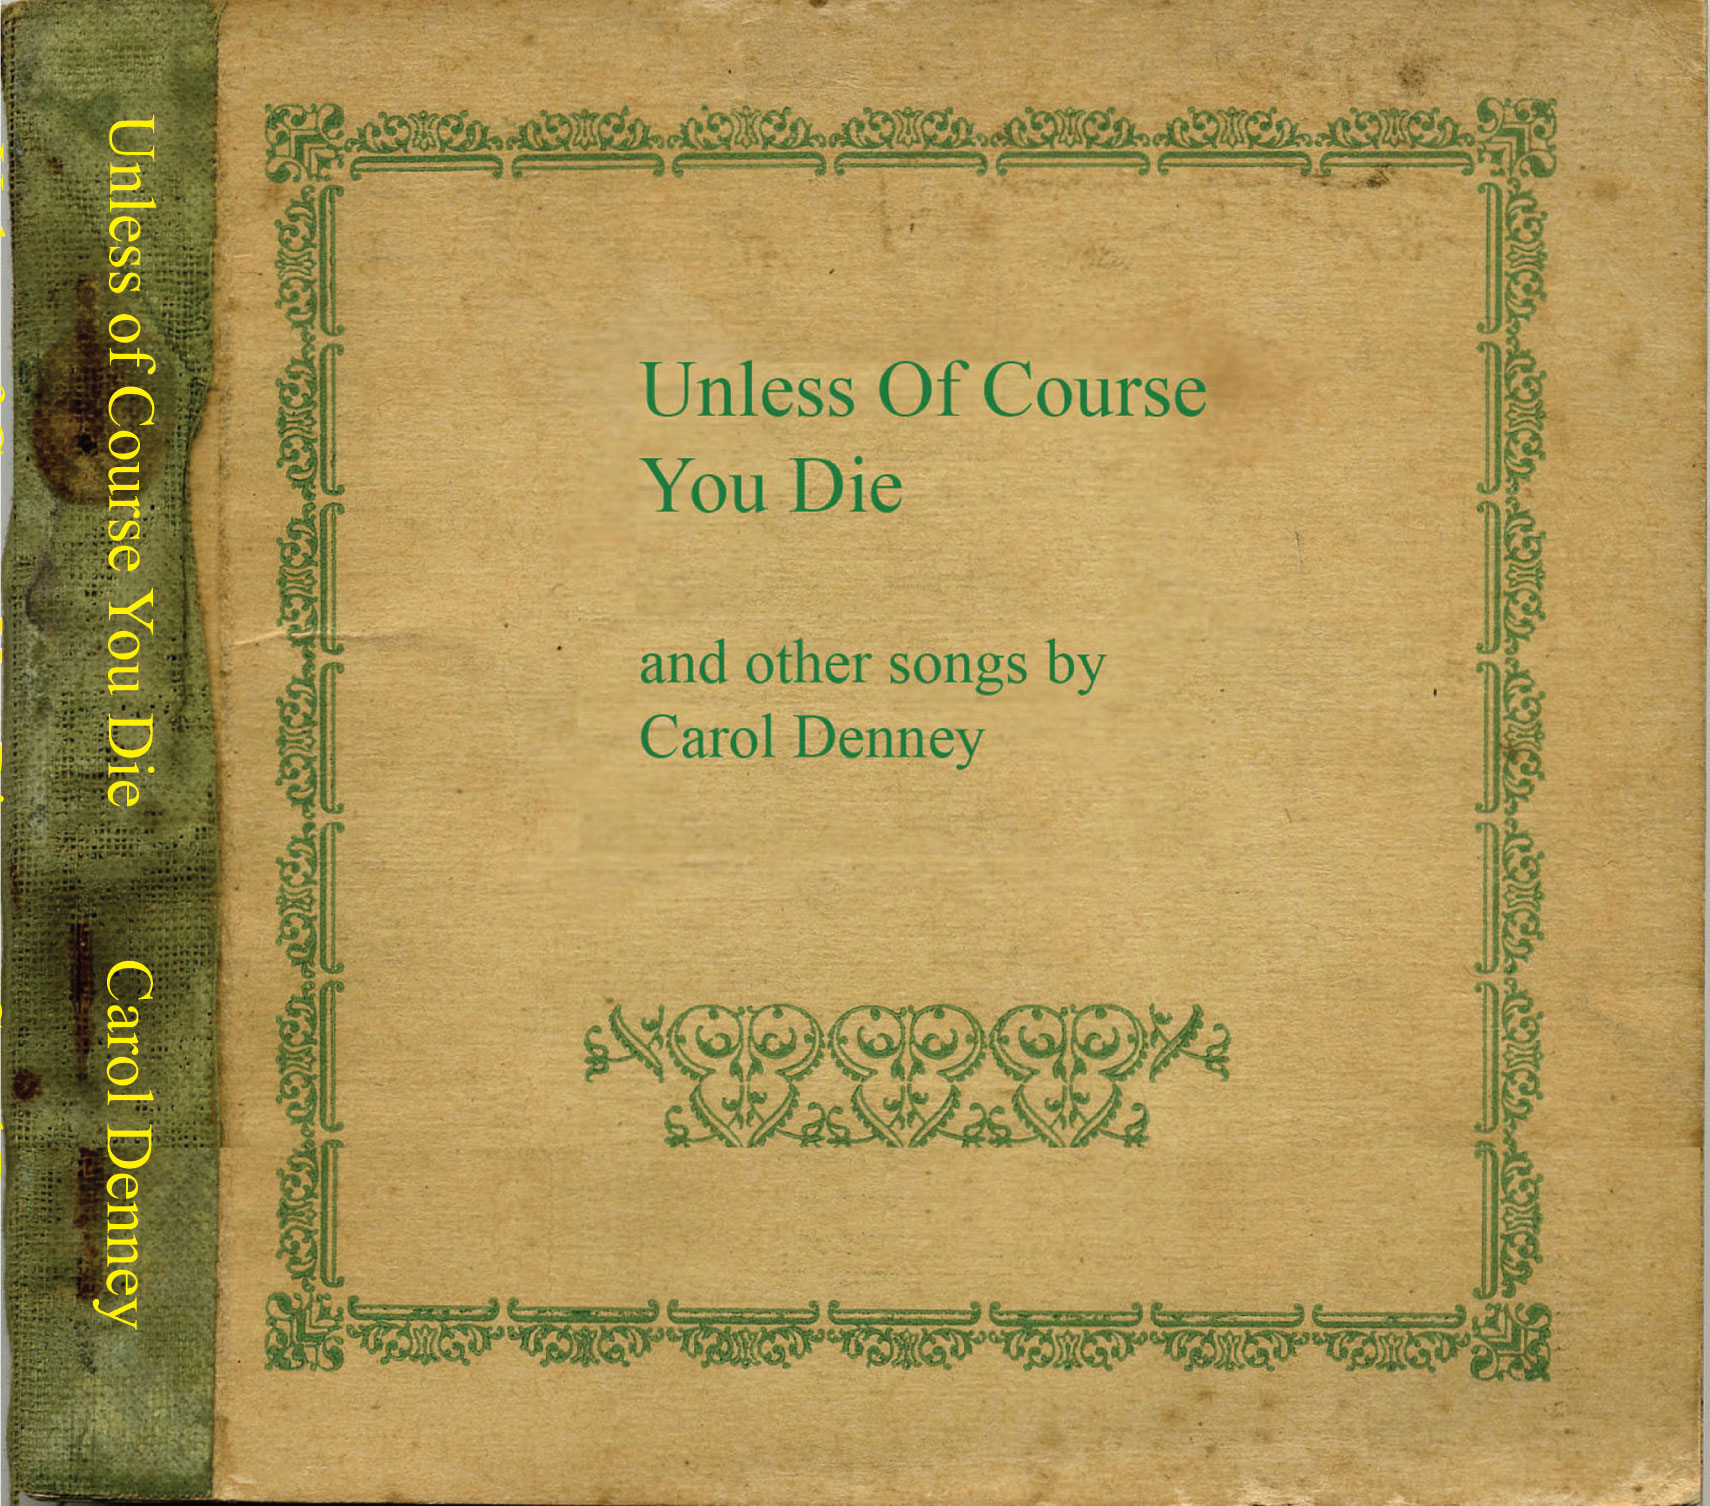 Unless Of Course You Die - the very latest recording.